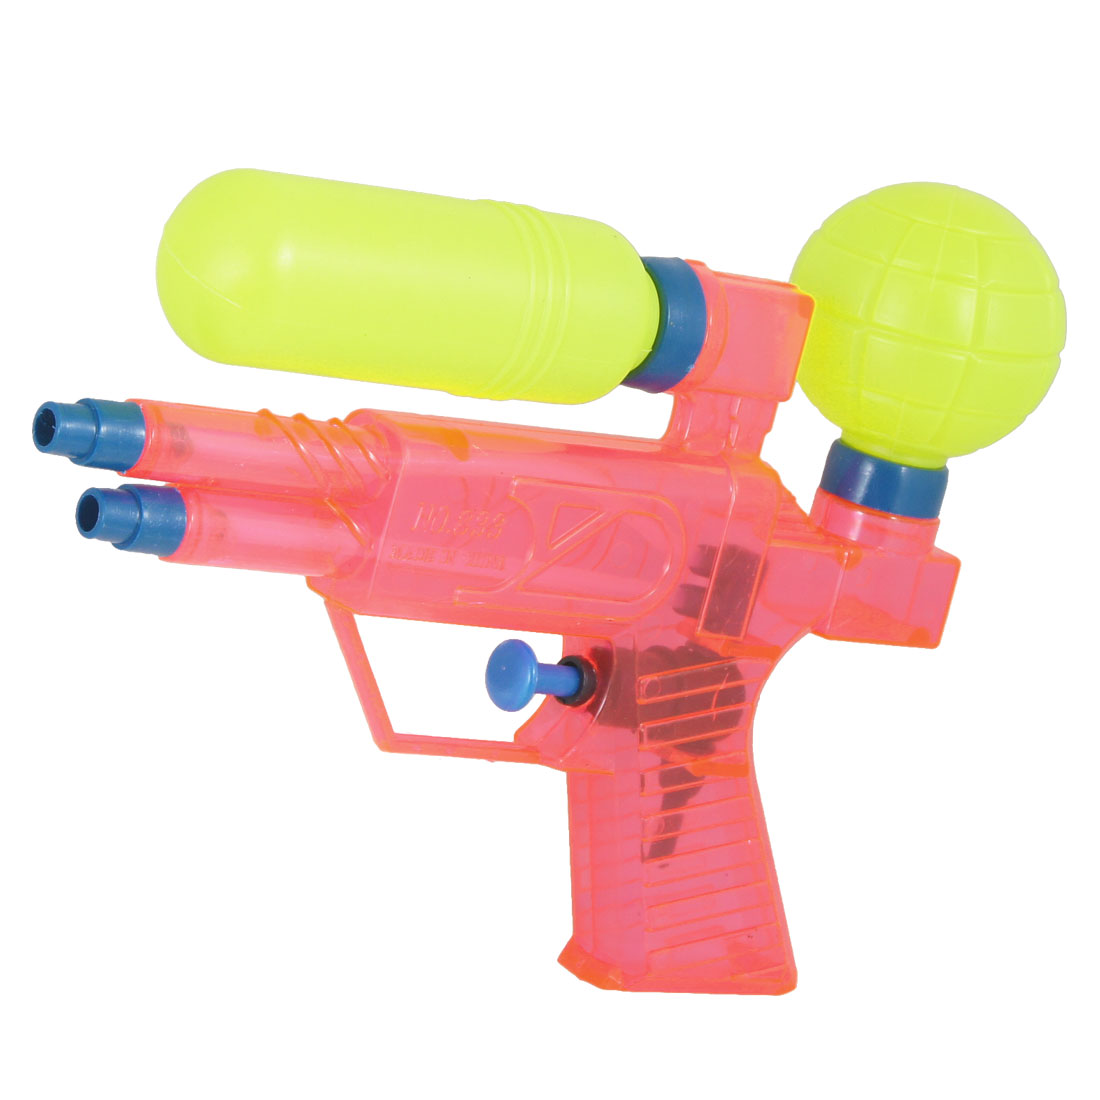 Kids-Playing-Plastic-Triggered-Squirt-Gun-Water-Toy-Pink-Yellow-Blue